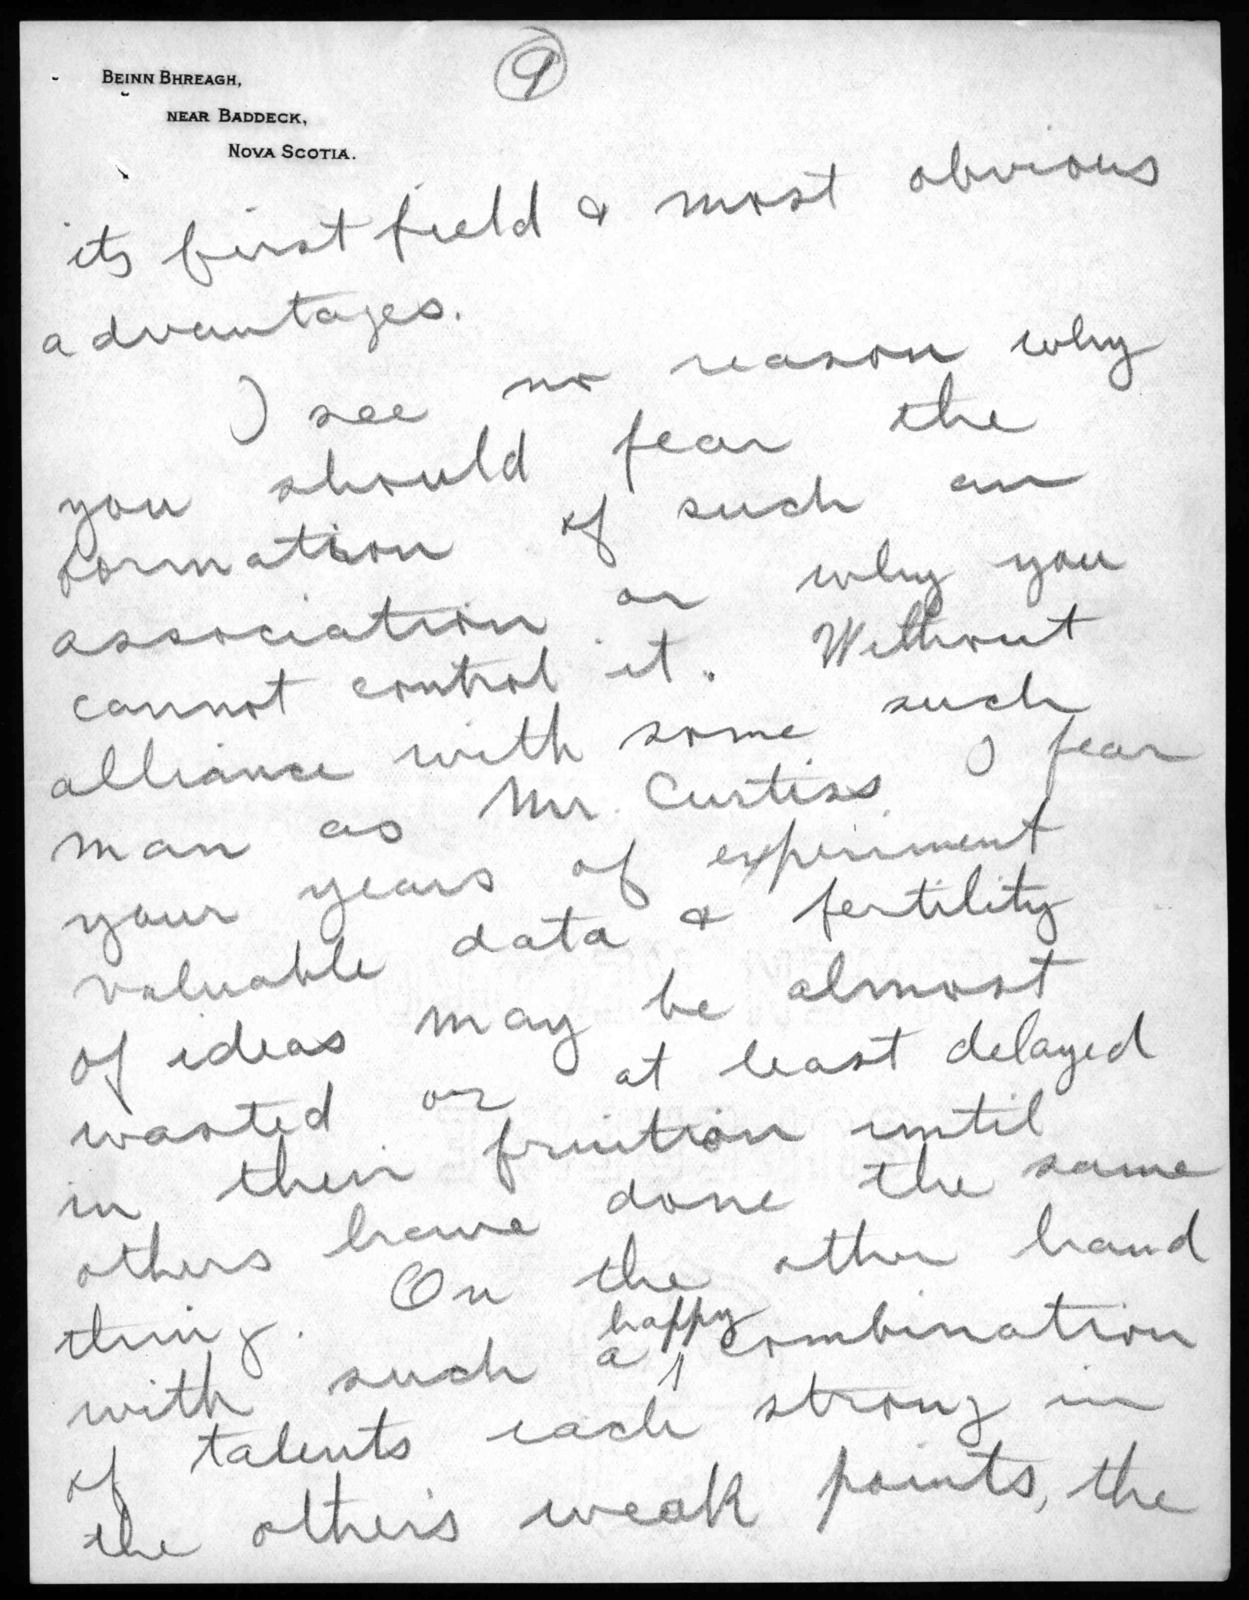 Letter from Frederick W. Baldwin to Alexander Graham Bell, July 28, 1907